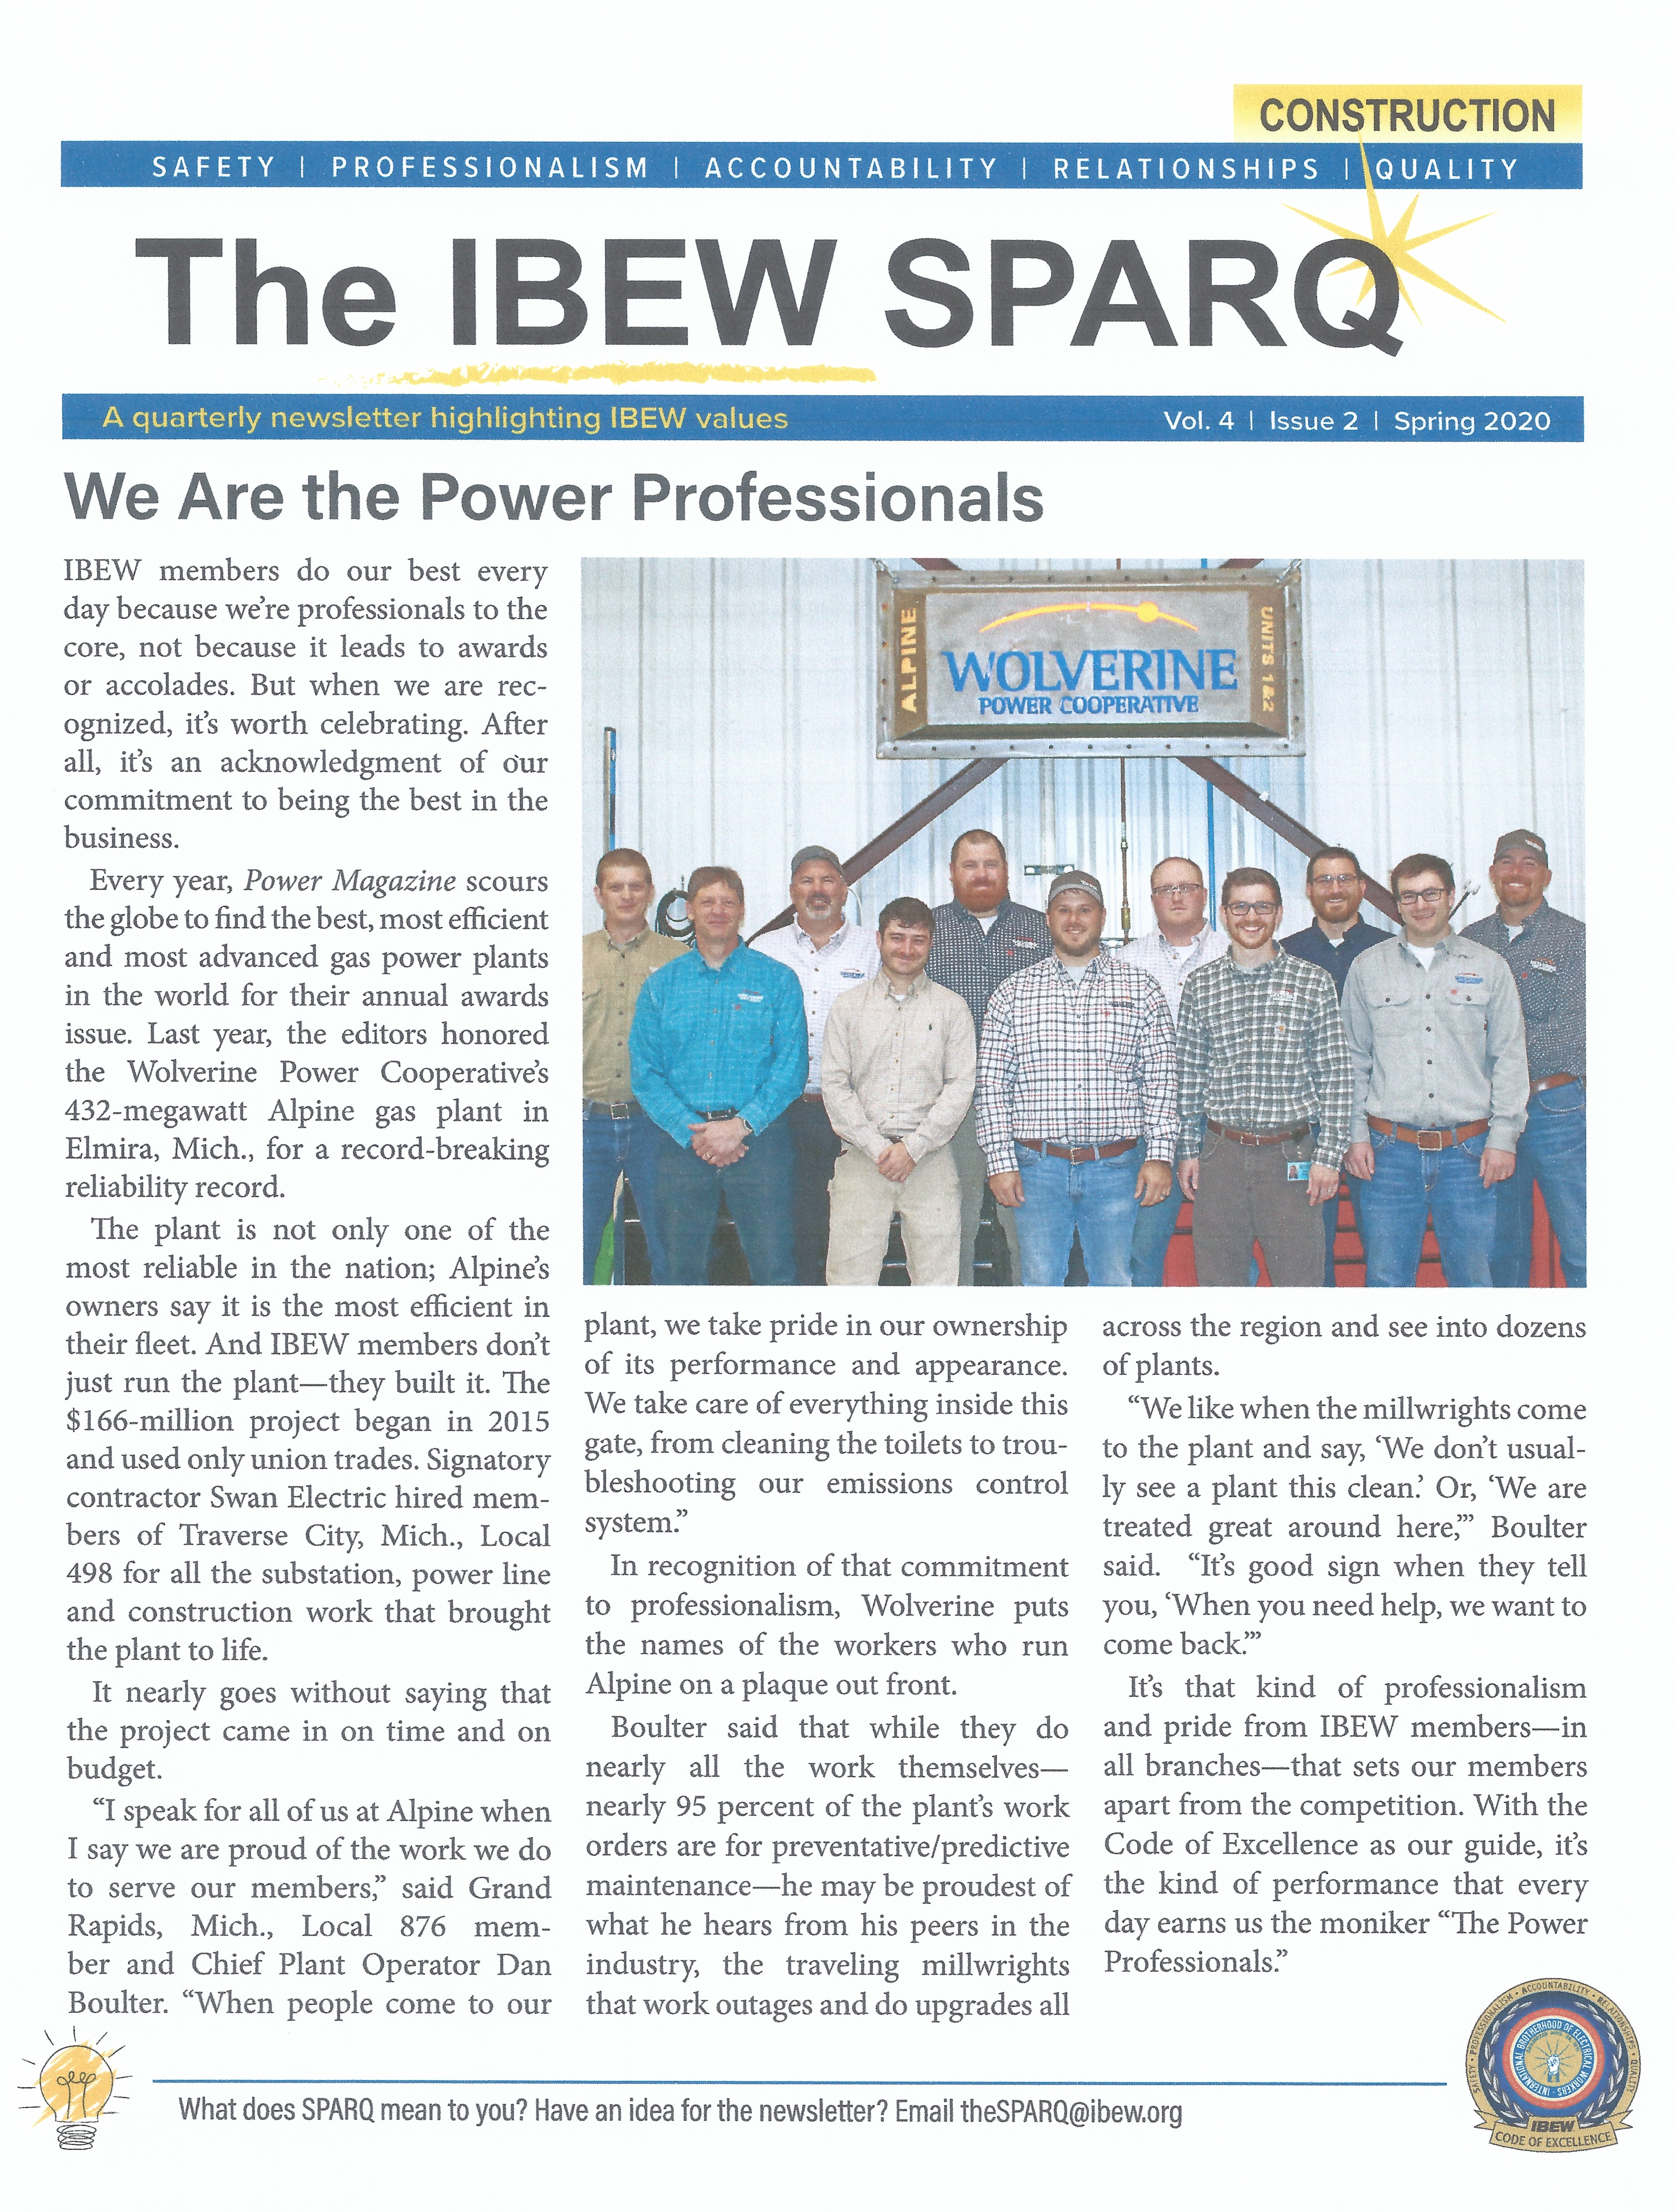 <br /><strong>SPARQ Spring 2020 - Professionalism Is Paramount To The IBEW